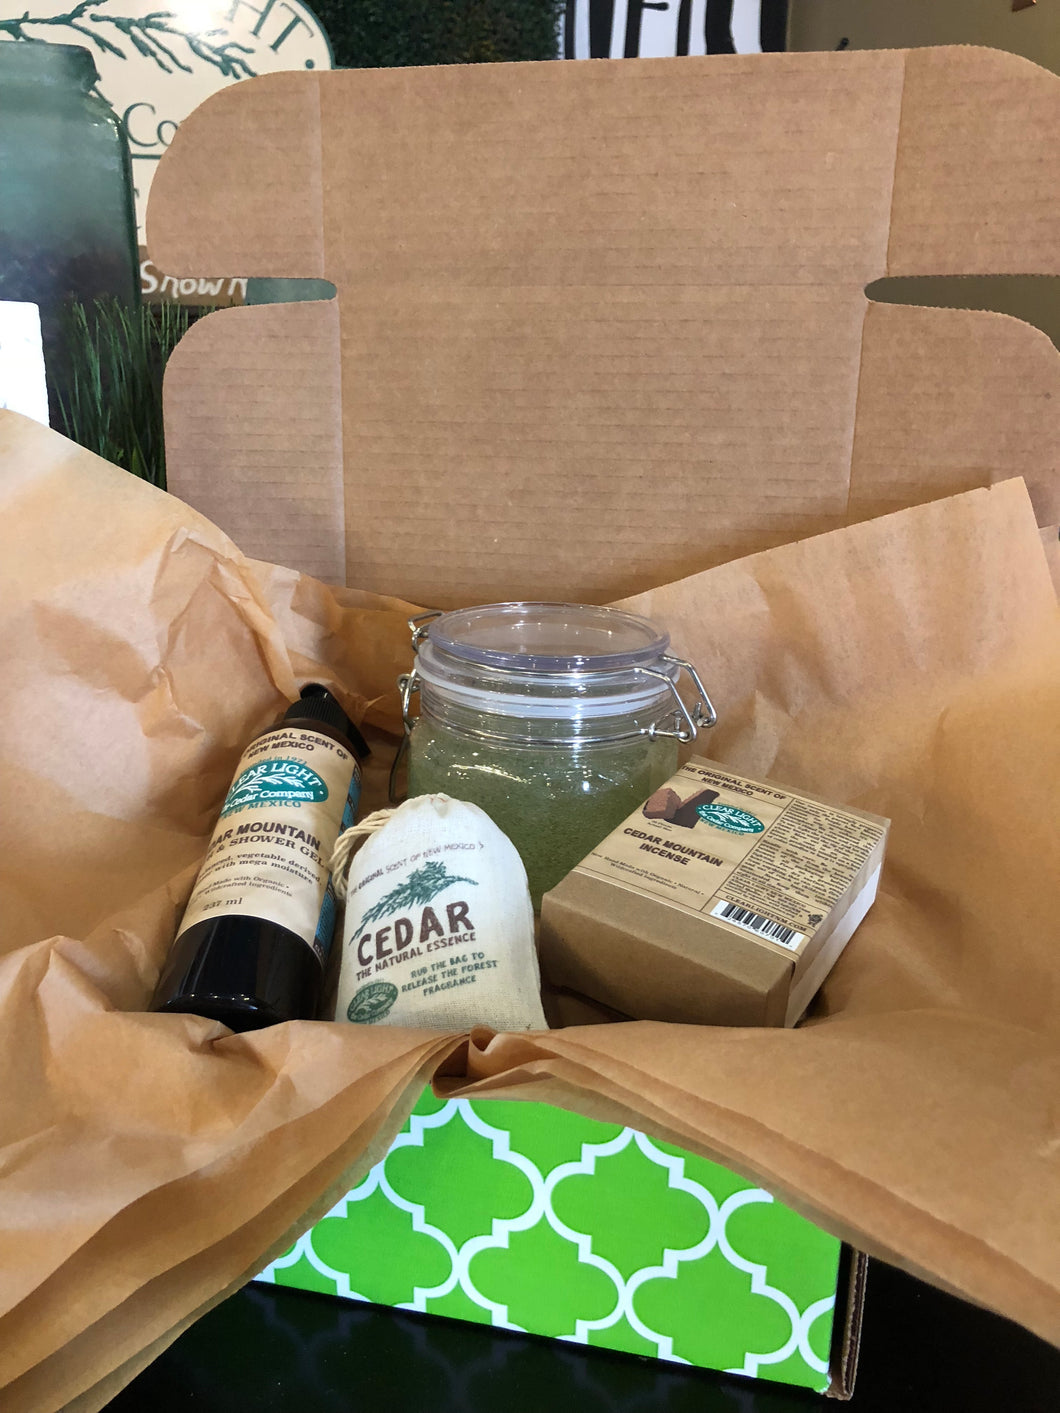 Monthly Cedar-ific Box from #NMTrue